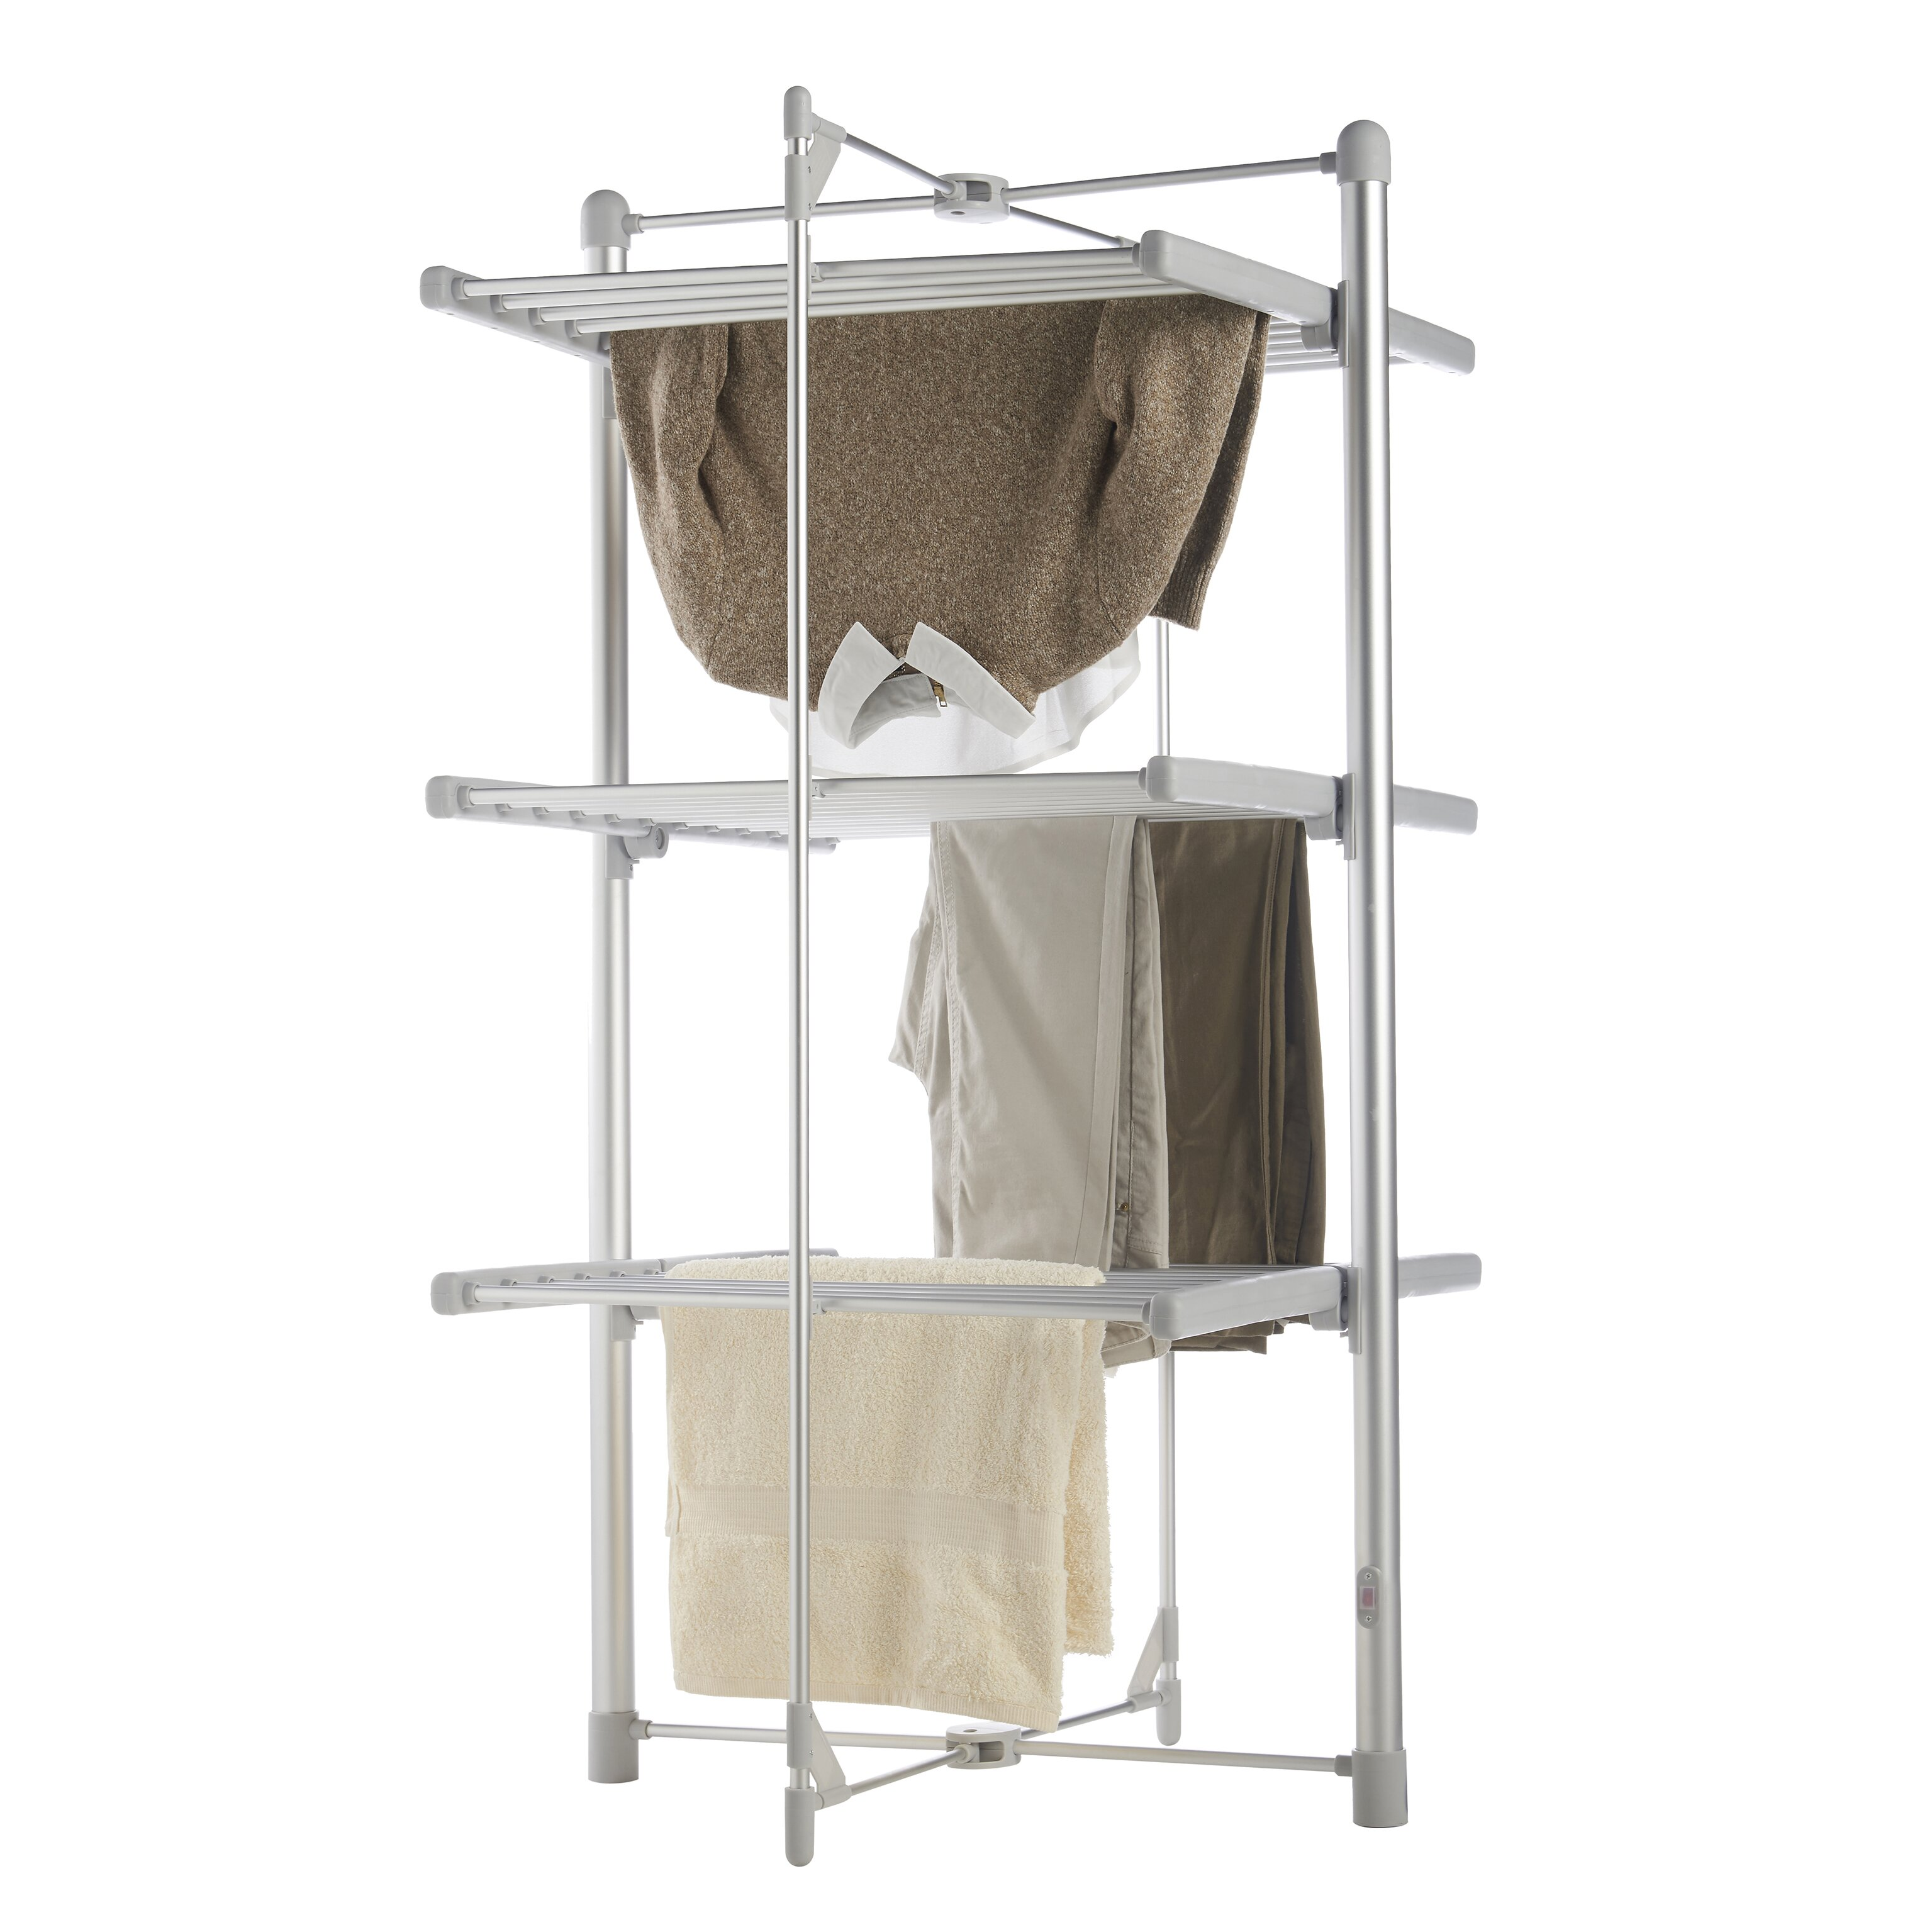 heated clothes drying rack wayfair. Black Bedroom Furniture Sets. Home Design Ideas